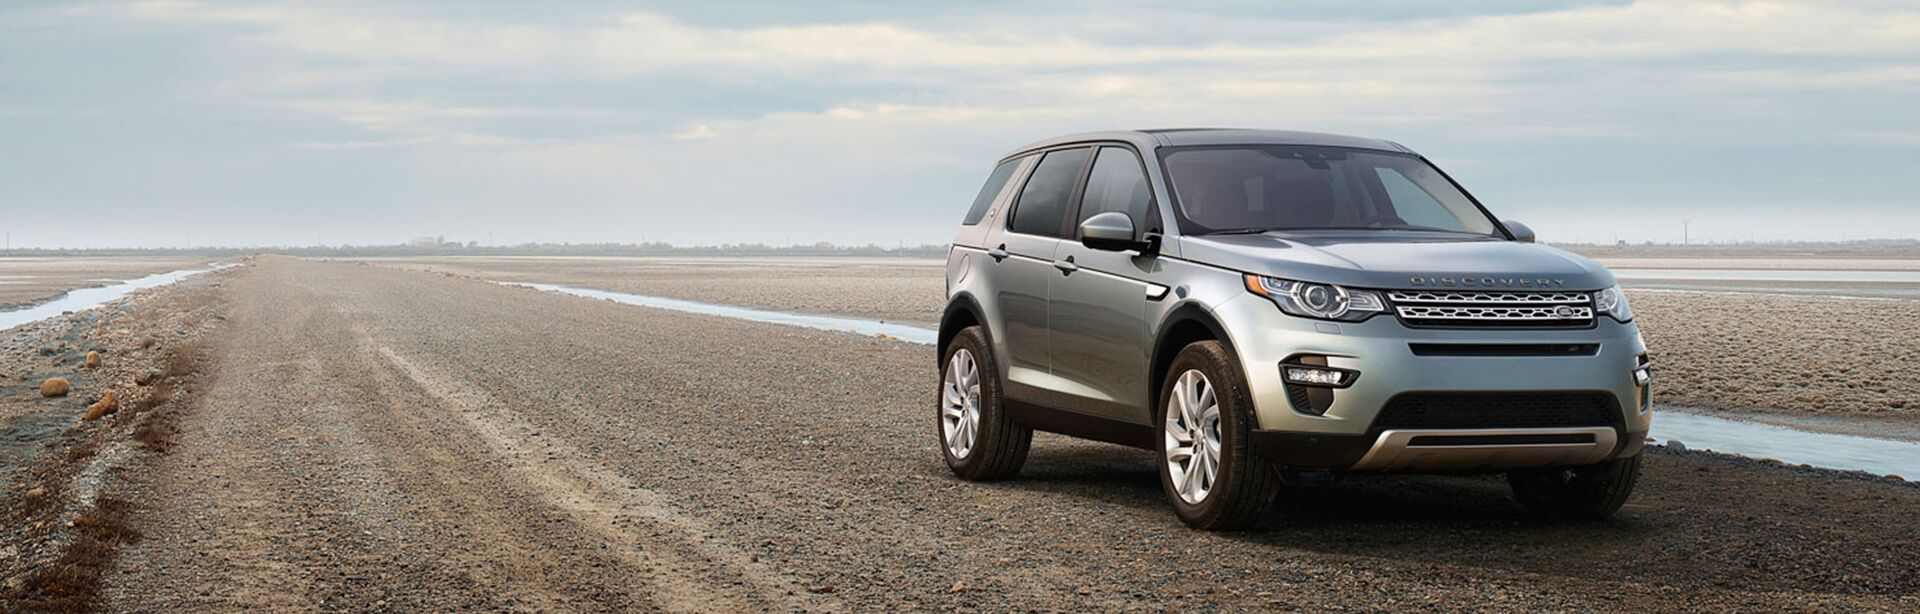 2018 Land Rover Discovery Sport HSE 286hp 4WD